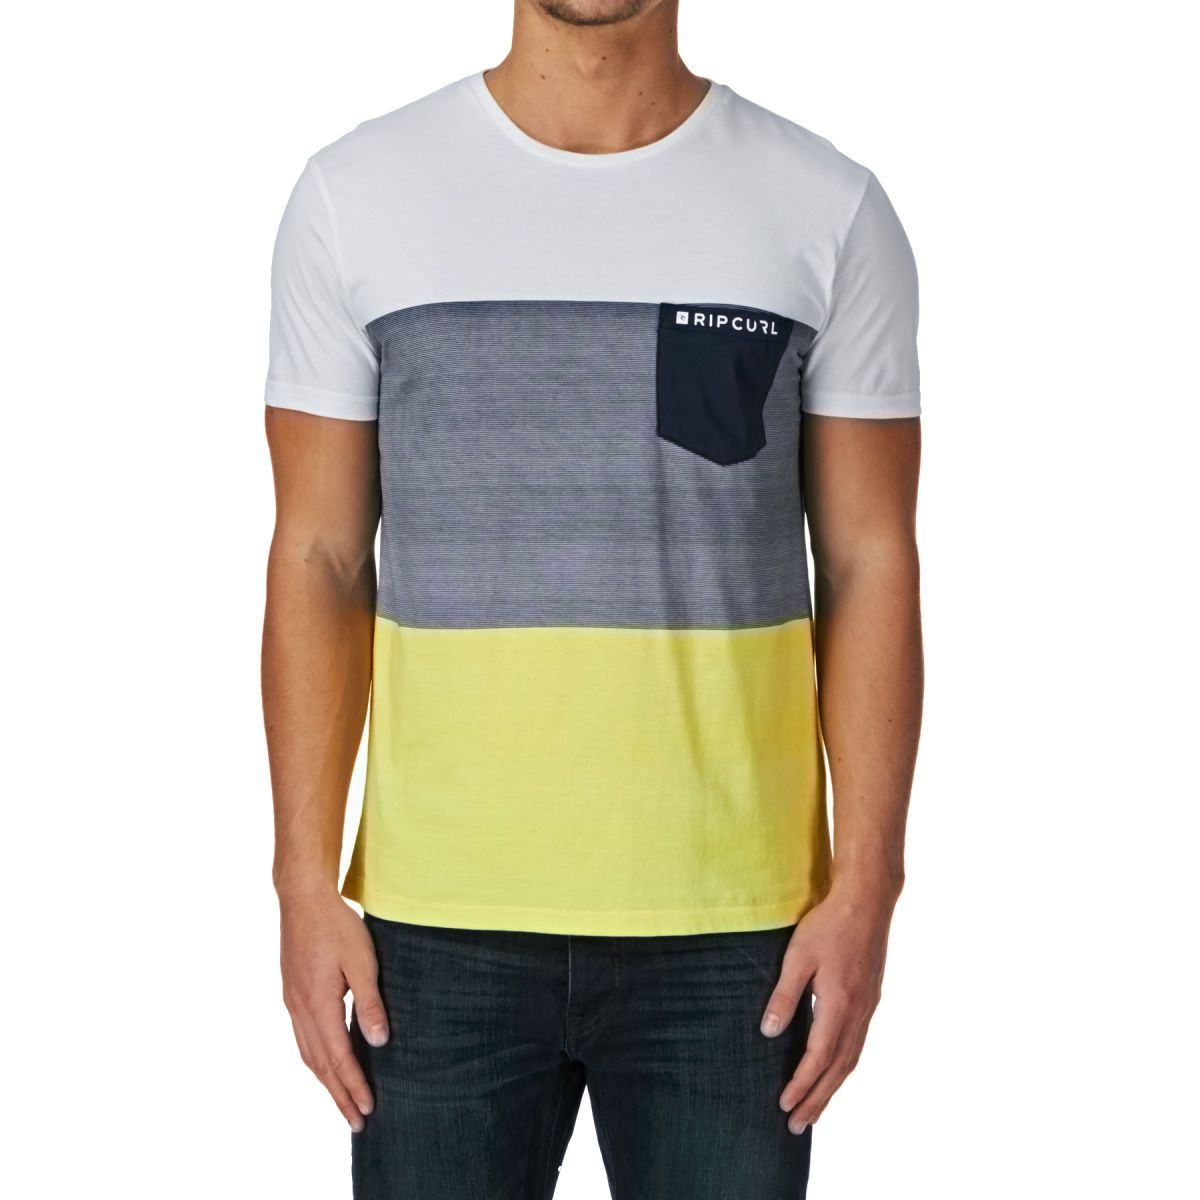 Rip Curl Refuse T-shirt - Optical White